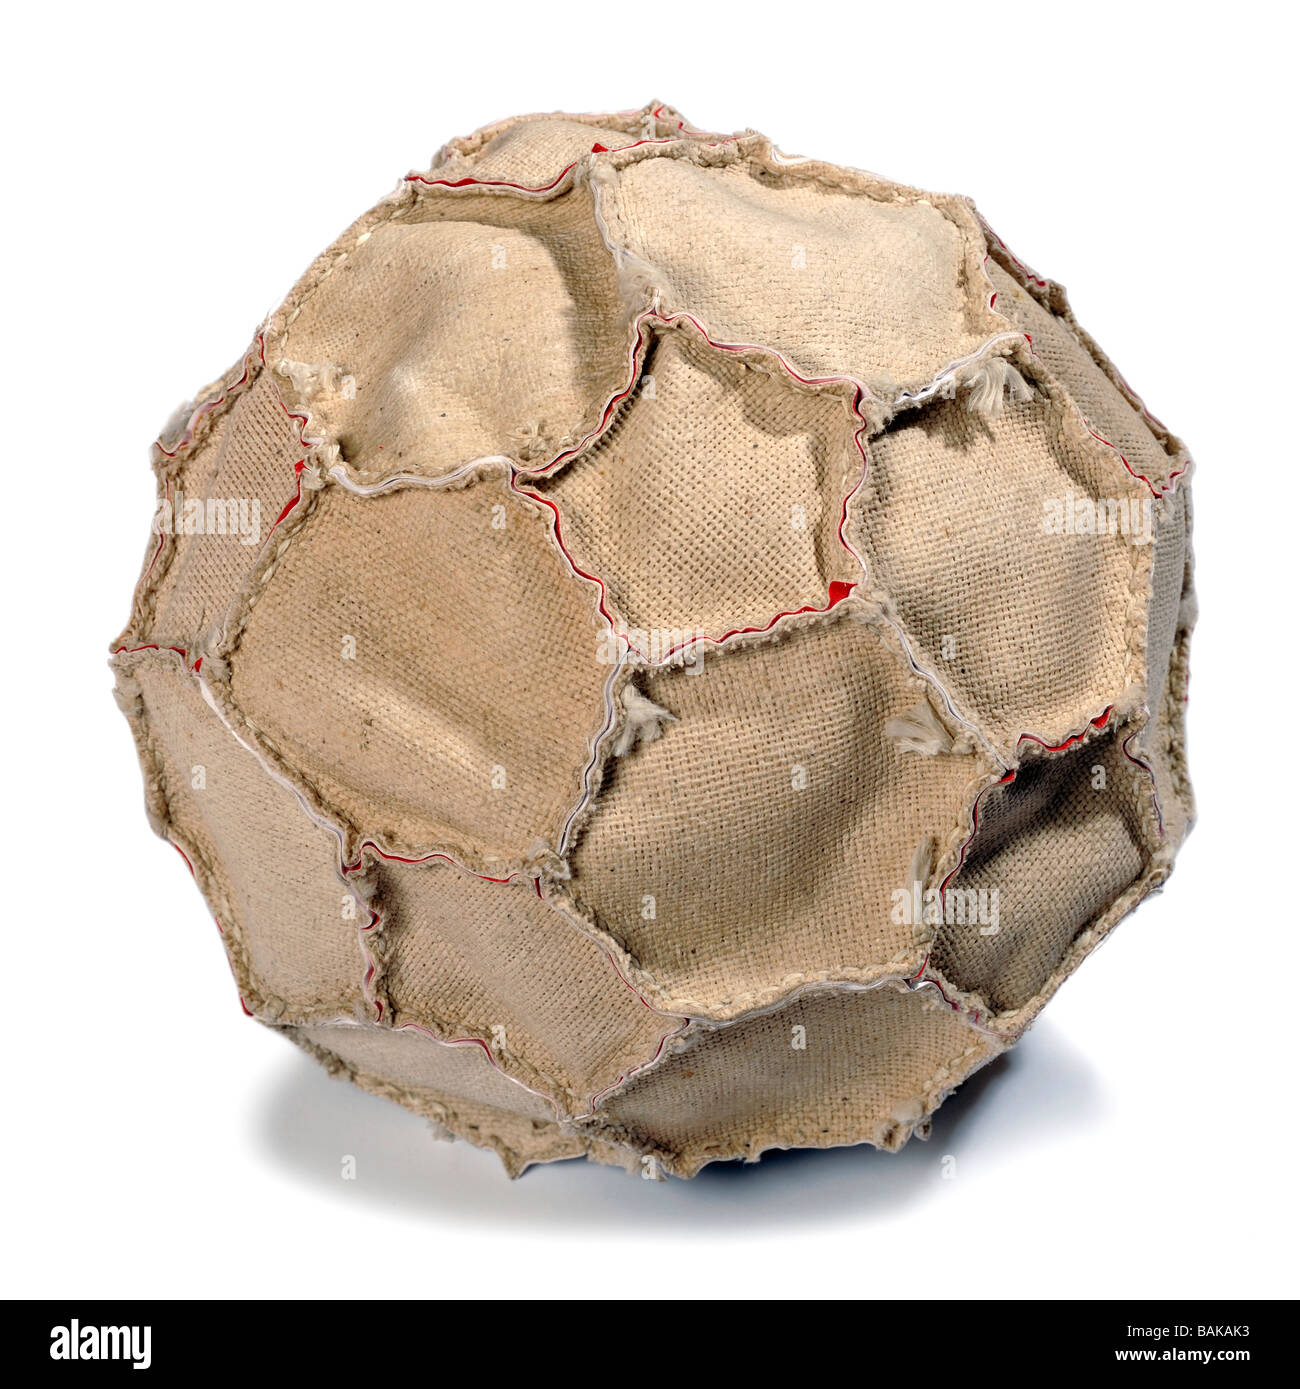 Inside out leather football - Stock Image